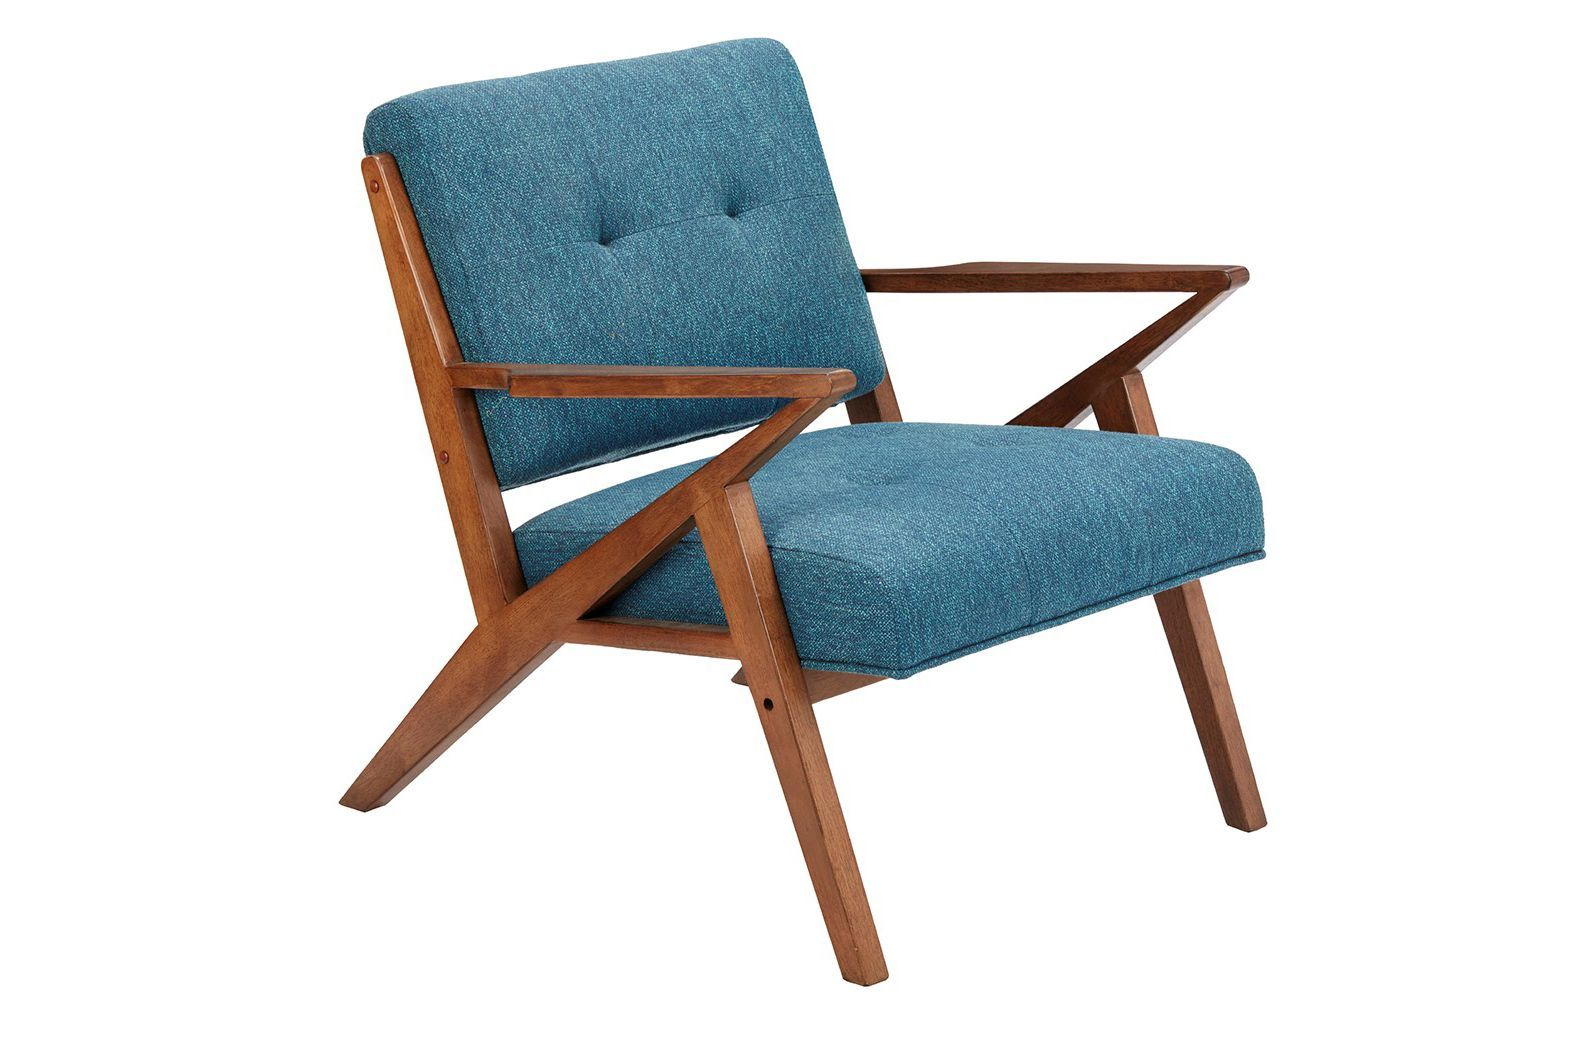 Pleasant Rocket Lounge Chair In Blue By Ink Ivy In 2019 Living Room Alphanode Cool Chair Designs And Ideas Alphanodeonline